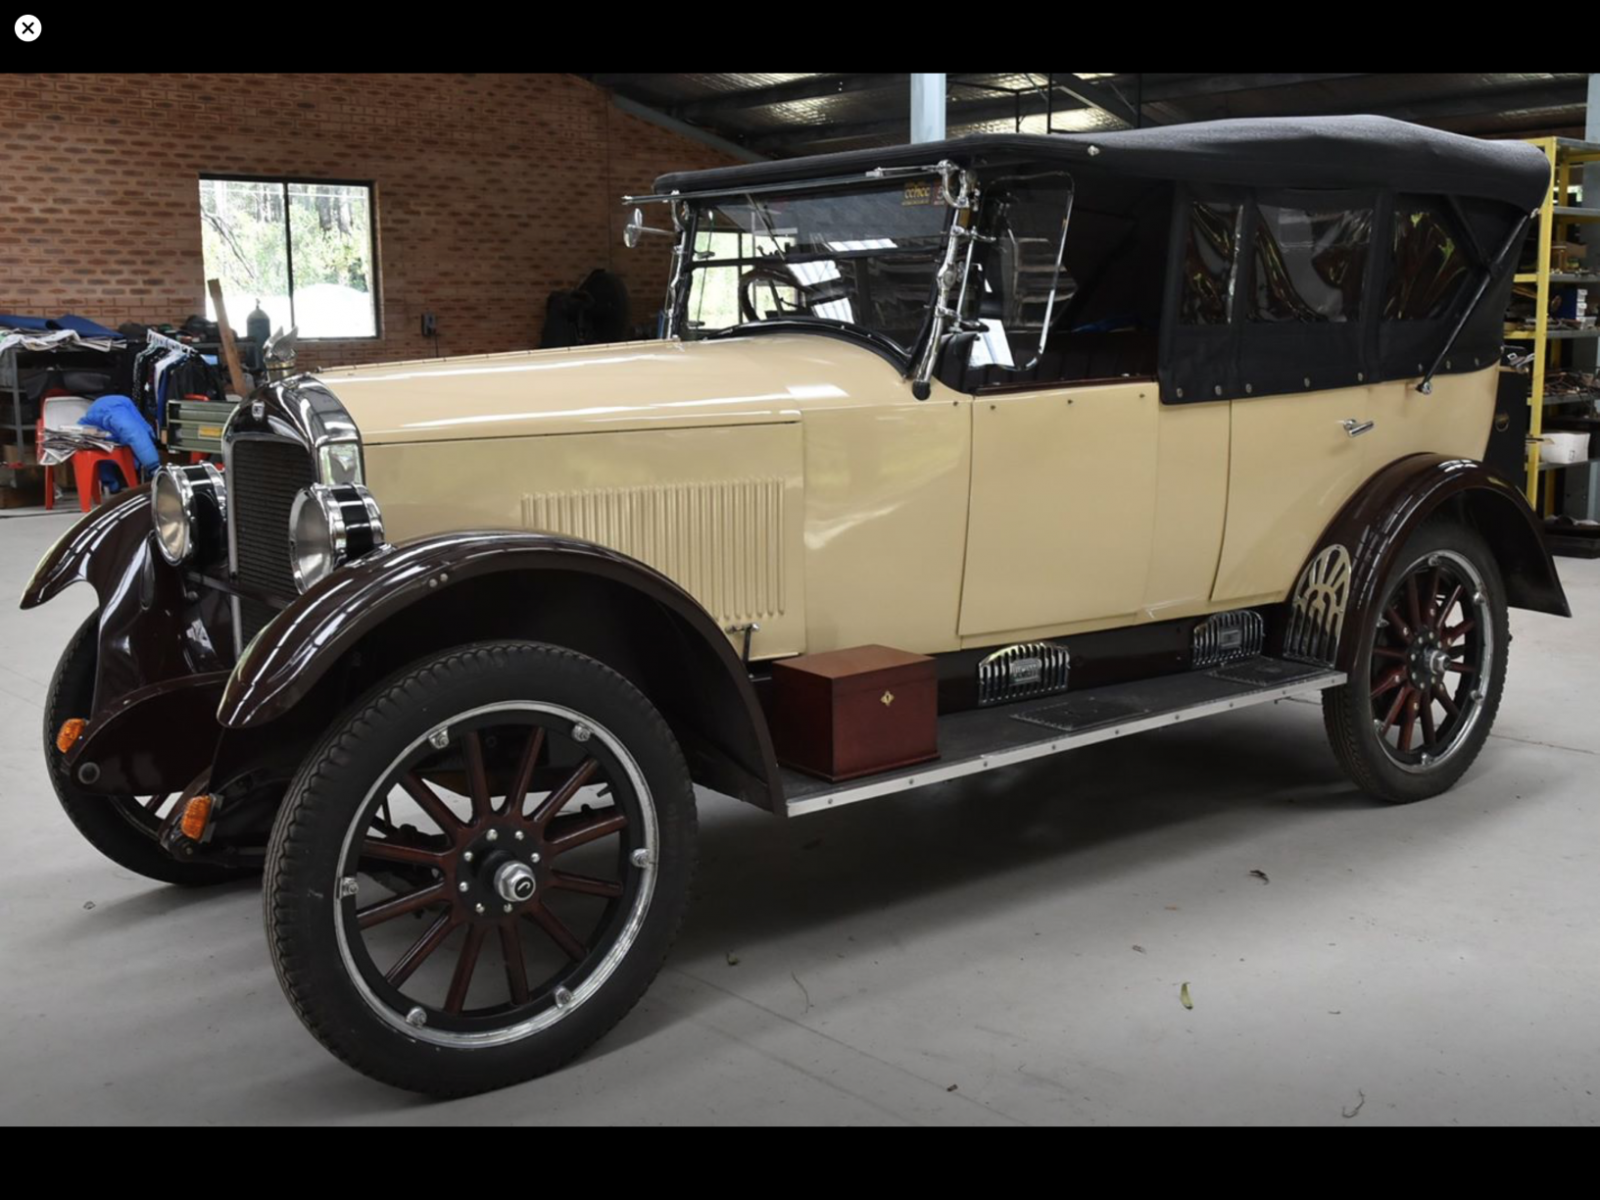 Jewett Tourer 23 - Detroit to Australia 100 years later